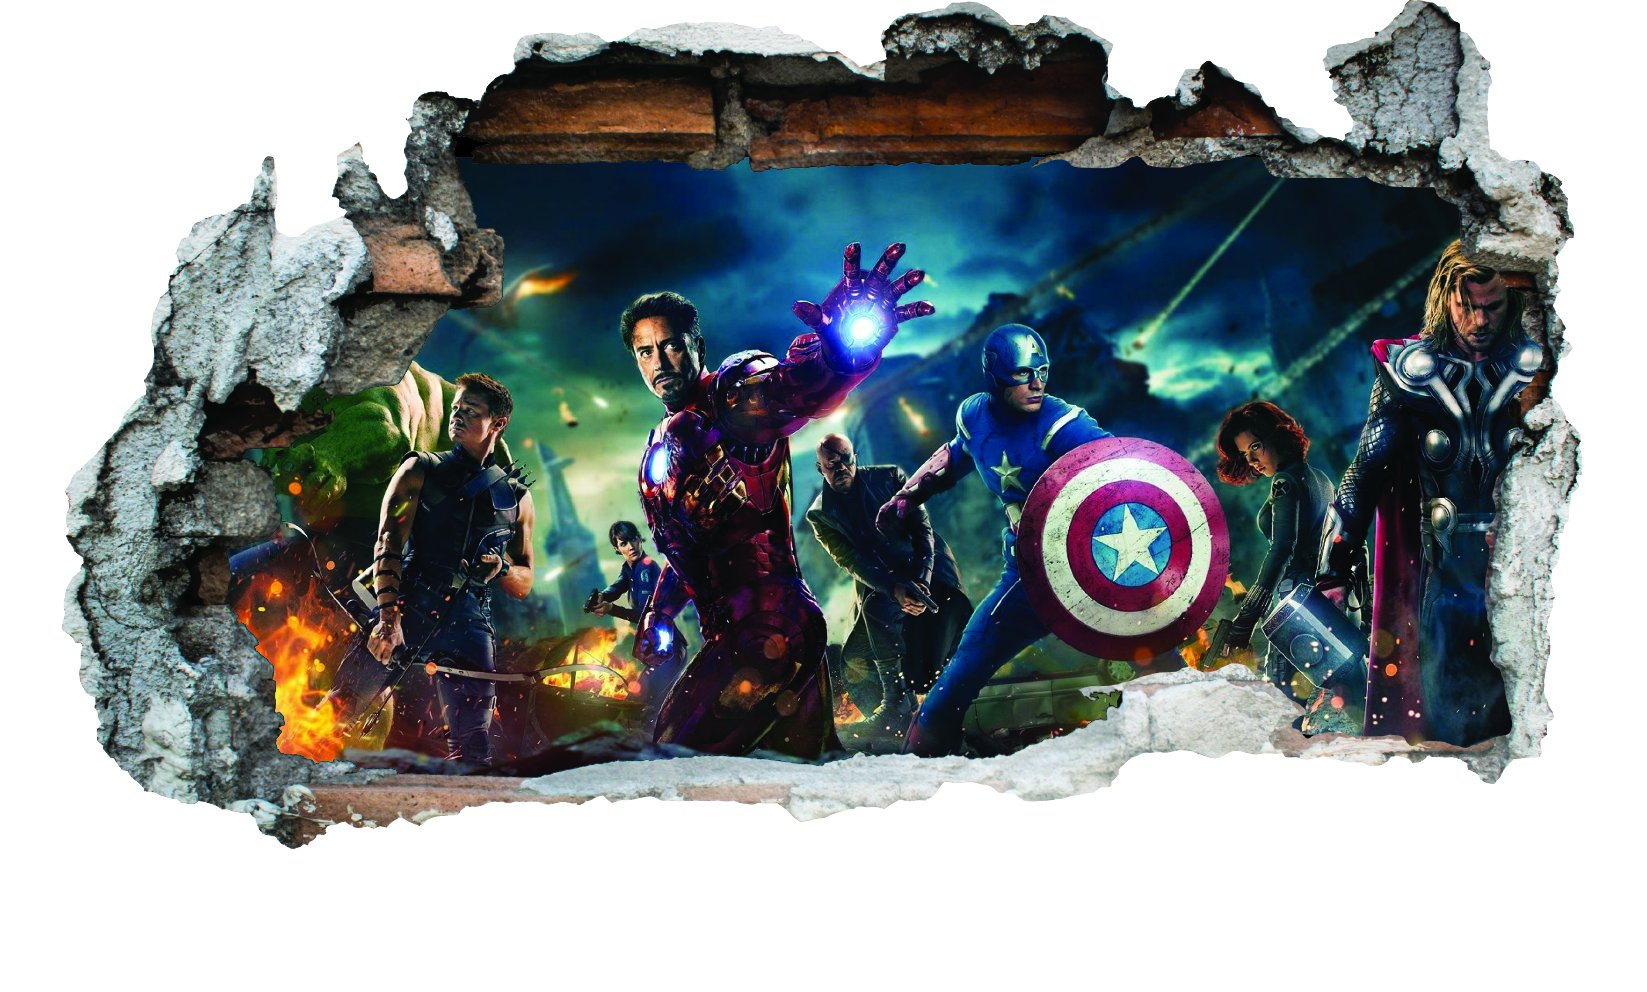 GNG Marvel Avengers Vinyl Smashed Wall Art Decal Stickers Bedroom Boys Girls 3D L by giZmoZ n gadgetZ (Image #2)